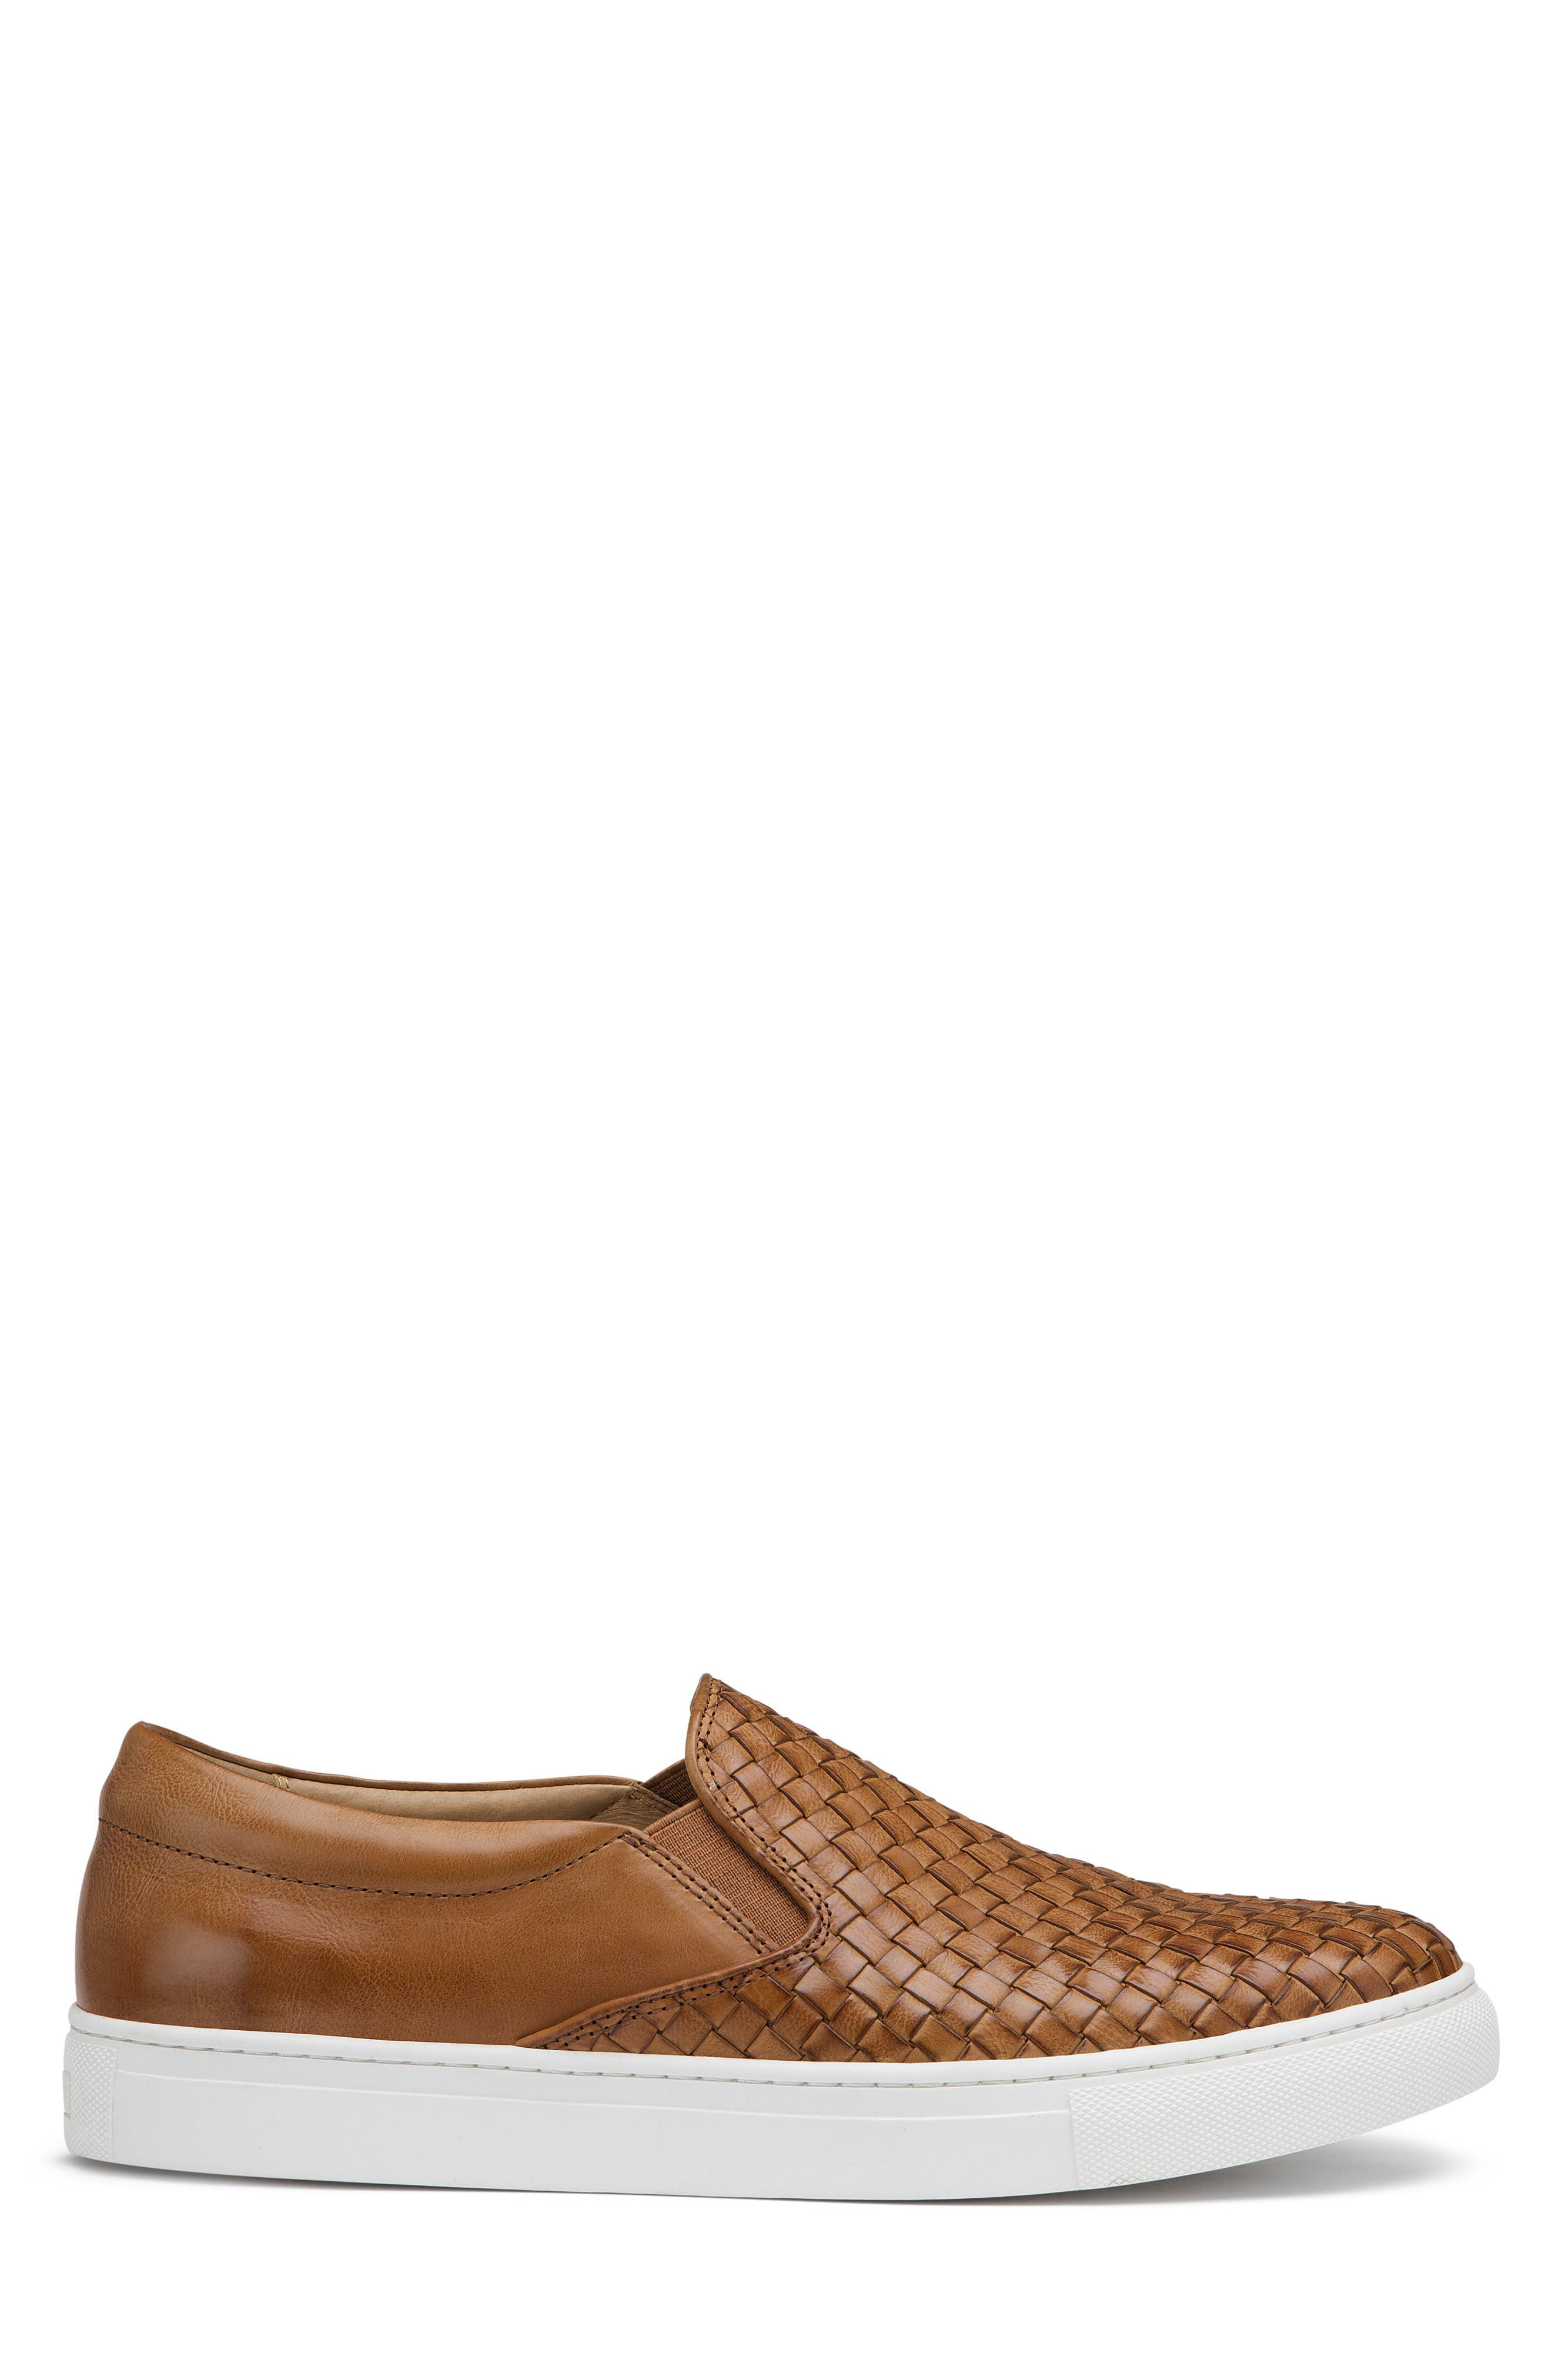 Alex Woven Slip-On Sneaker,                             Alternate thumbnail 3, color,                             Tan Leather